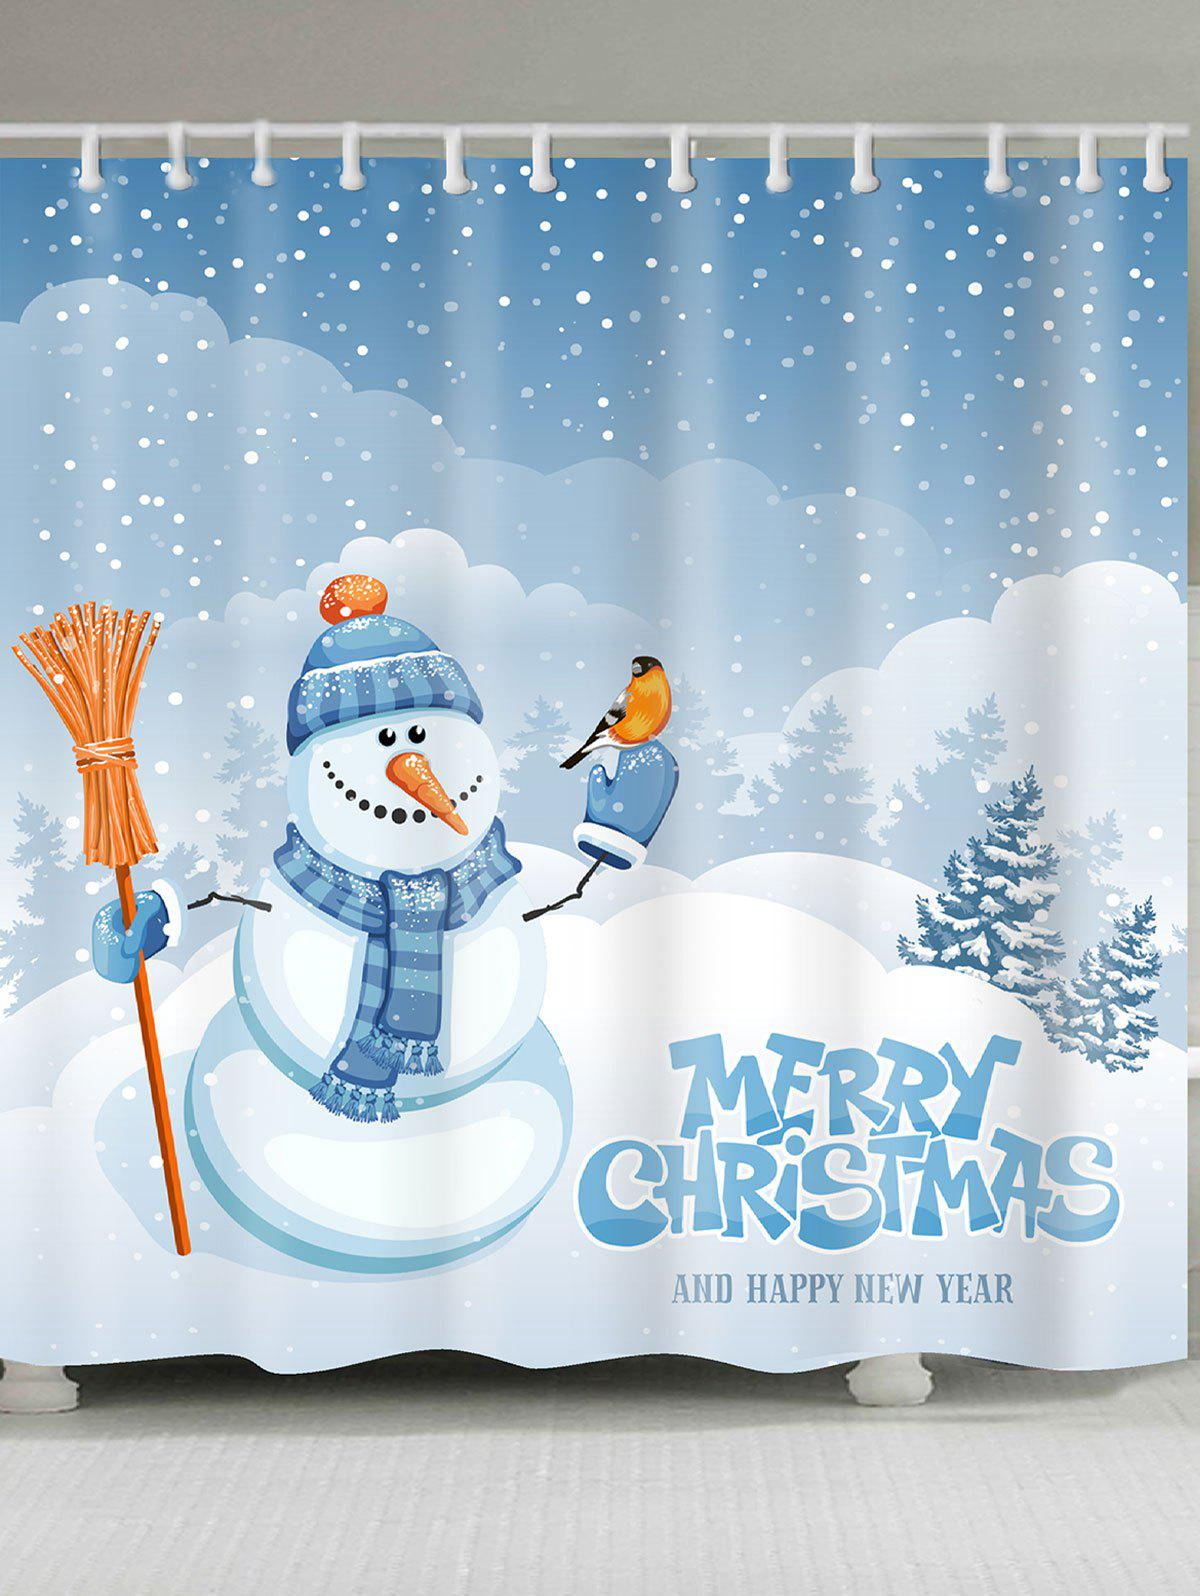 Snowy Christmas Snowman Pattern Shower CurtainHOME<br><br>Size: W71 INCH * L71 INCH; Color: BLUE + WHITE; Products Type: Shower Curtains; Materials: Polyester; Pattern: Snow,Snowman; Style: Festival; Number of Hook Holes: W59 inch * L71 inch:10, W71 inch * L71 inch:12, W71 inch * L79 inch:12; Package Contents: 1 x Shower Curtain 1 x Hooks (Set);